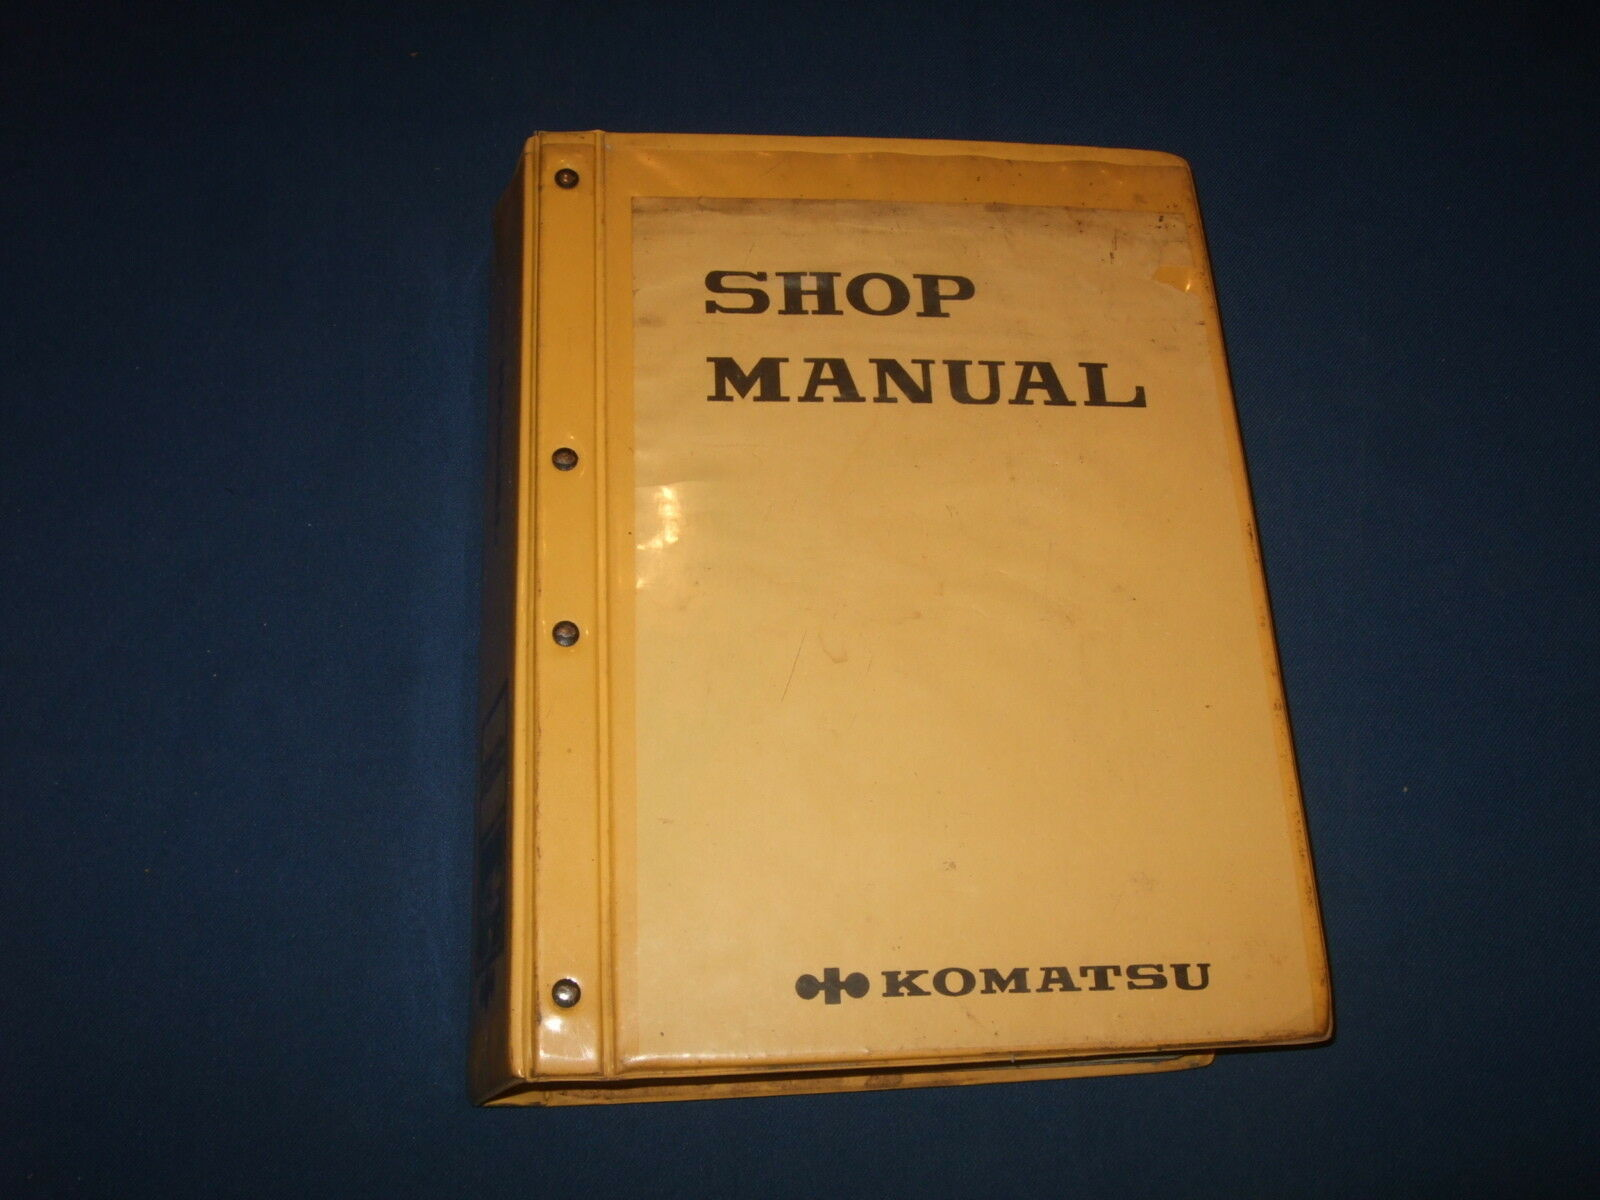 Komatsu Excavator Pc200 Pc210-3 Pc220 Pc240-3 Excavator Service Shop Manual  1 of 4Only 1 available ...